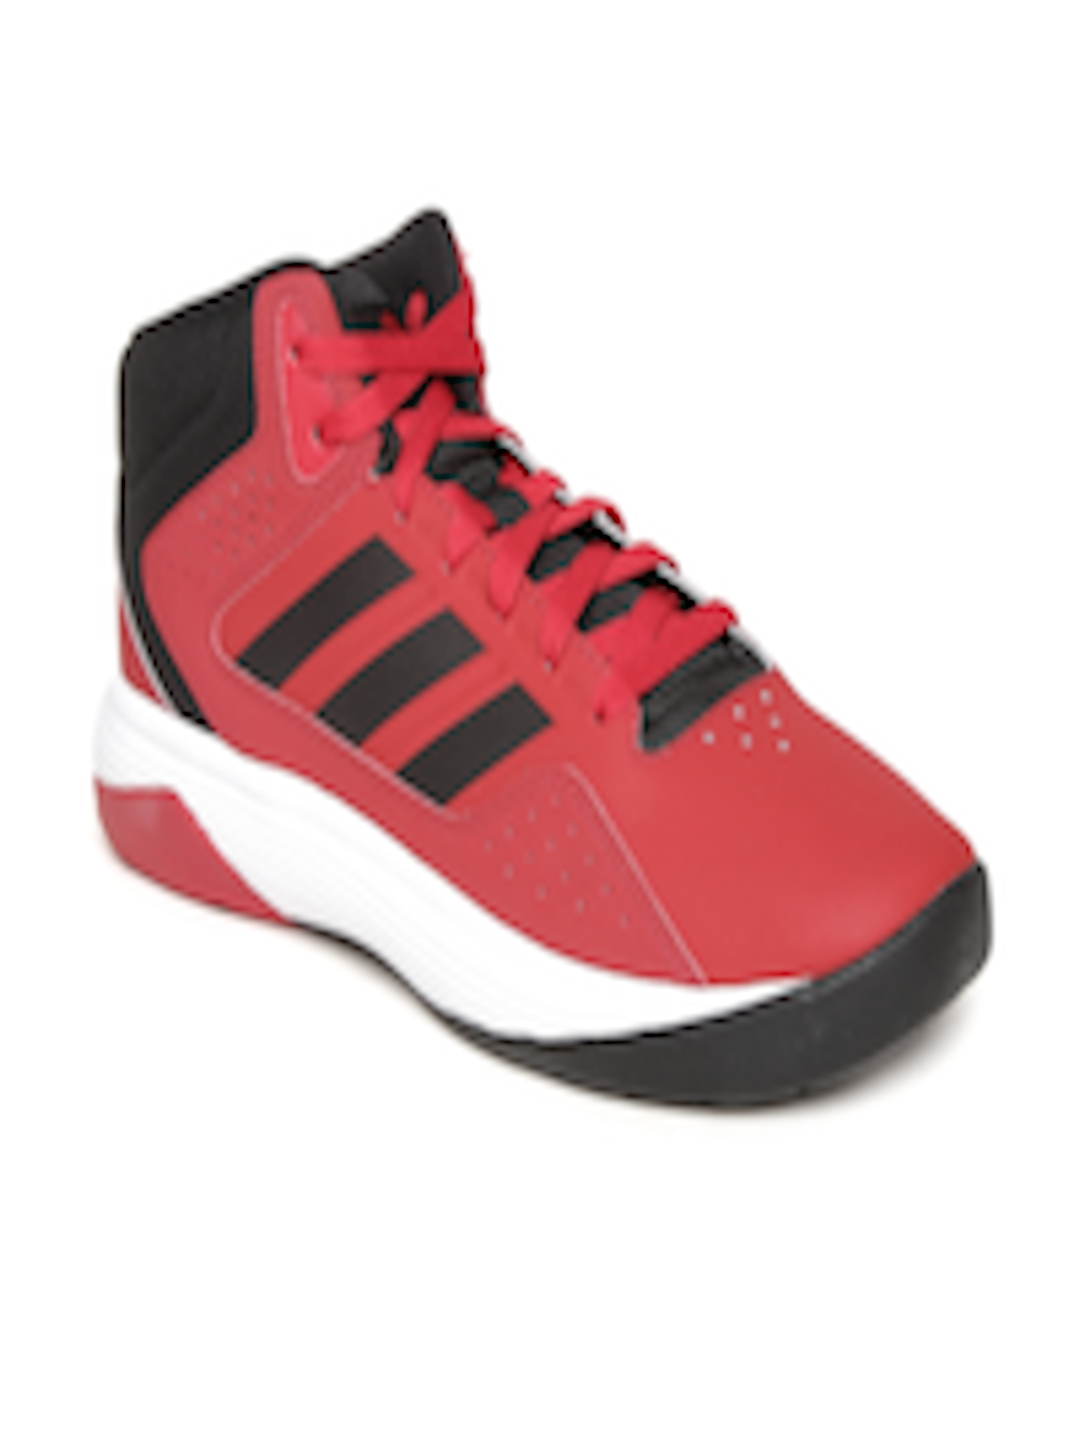 09a4c9a37fb6 Buy ADIDAS NEO Men Red Cloudfoam Ilation Mid Top Basketball Shoes - Sports  Shoes for Men 1639614